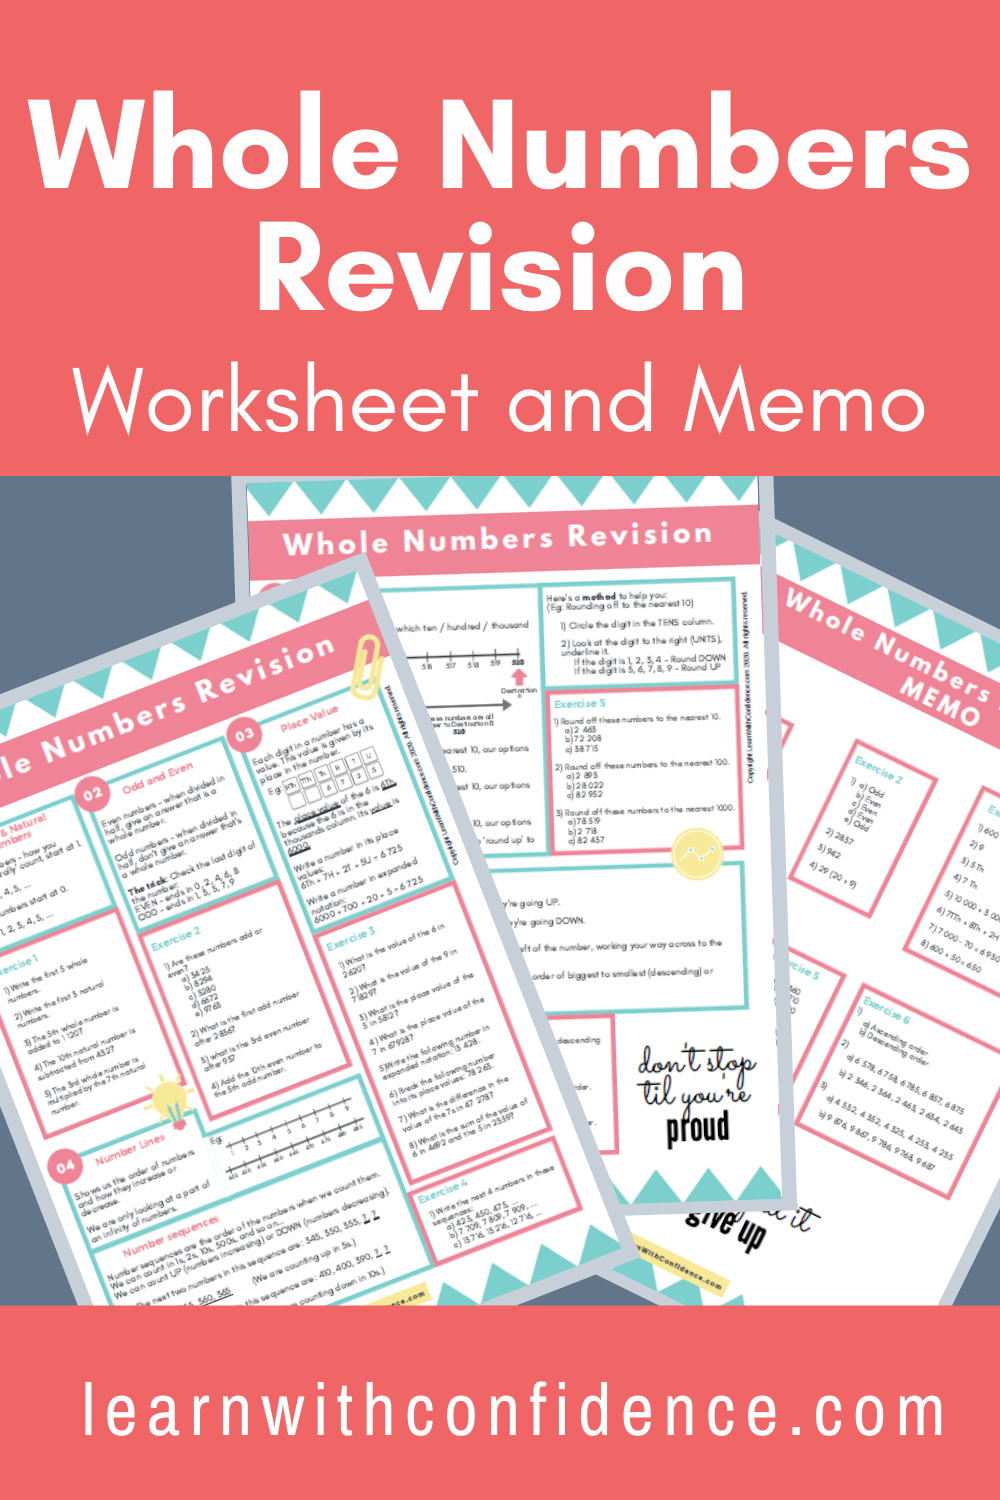 Whole Numbers Revision Worksheet Grade 4 6 Maths Memo Free Math Worksheets